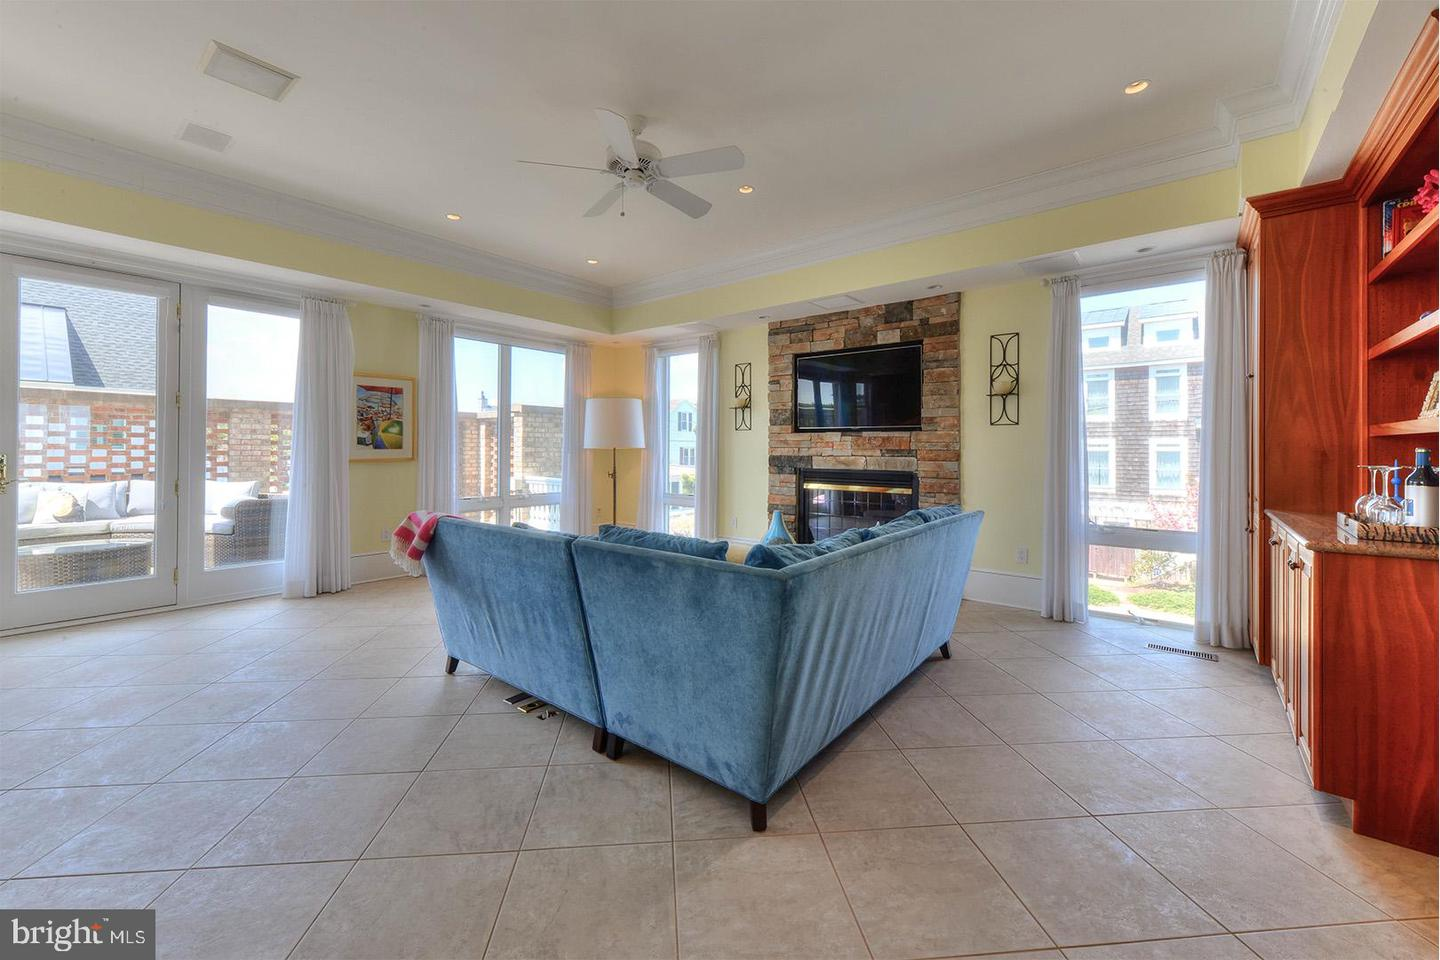 DESU159700-304100430771-2020-05-01-17-16-50 4 Prospect St | Rehoboth Beach, DE Real Estate For Sale | MLS# Desu159700  - Lee Ann Group